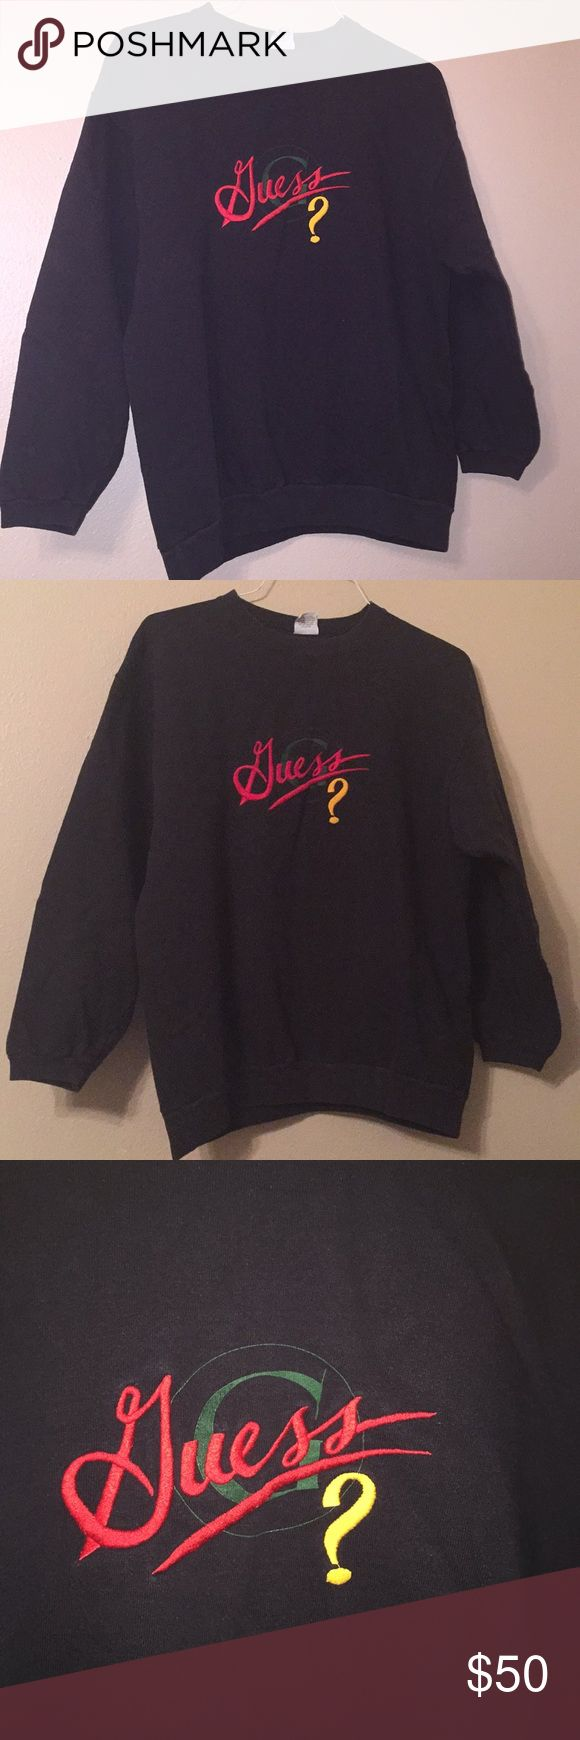 """90s GUESS JEANS sweatshirt one size fits all retro 🔥price firm🔥super rare in great condition (normal fading no stains or holes). 90s vintage GUESS jeans sweatshirt with embroidered G and Guess spell out logo on chest. Black with red green yellow. Tag SZ is """"one size"""" fits like a men's medium, possibly a large. I am a women's small and it fits great as an oversized sweatshirt not too big at all. the sleeves fit fine for me but I am a female so sleeves may be short for a male they measure 19…"""